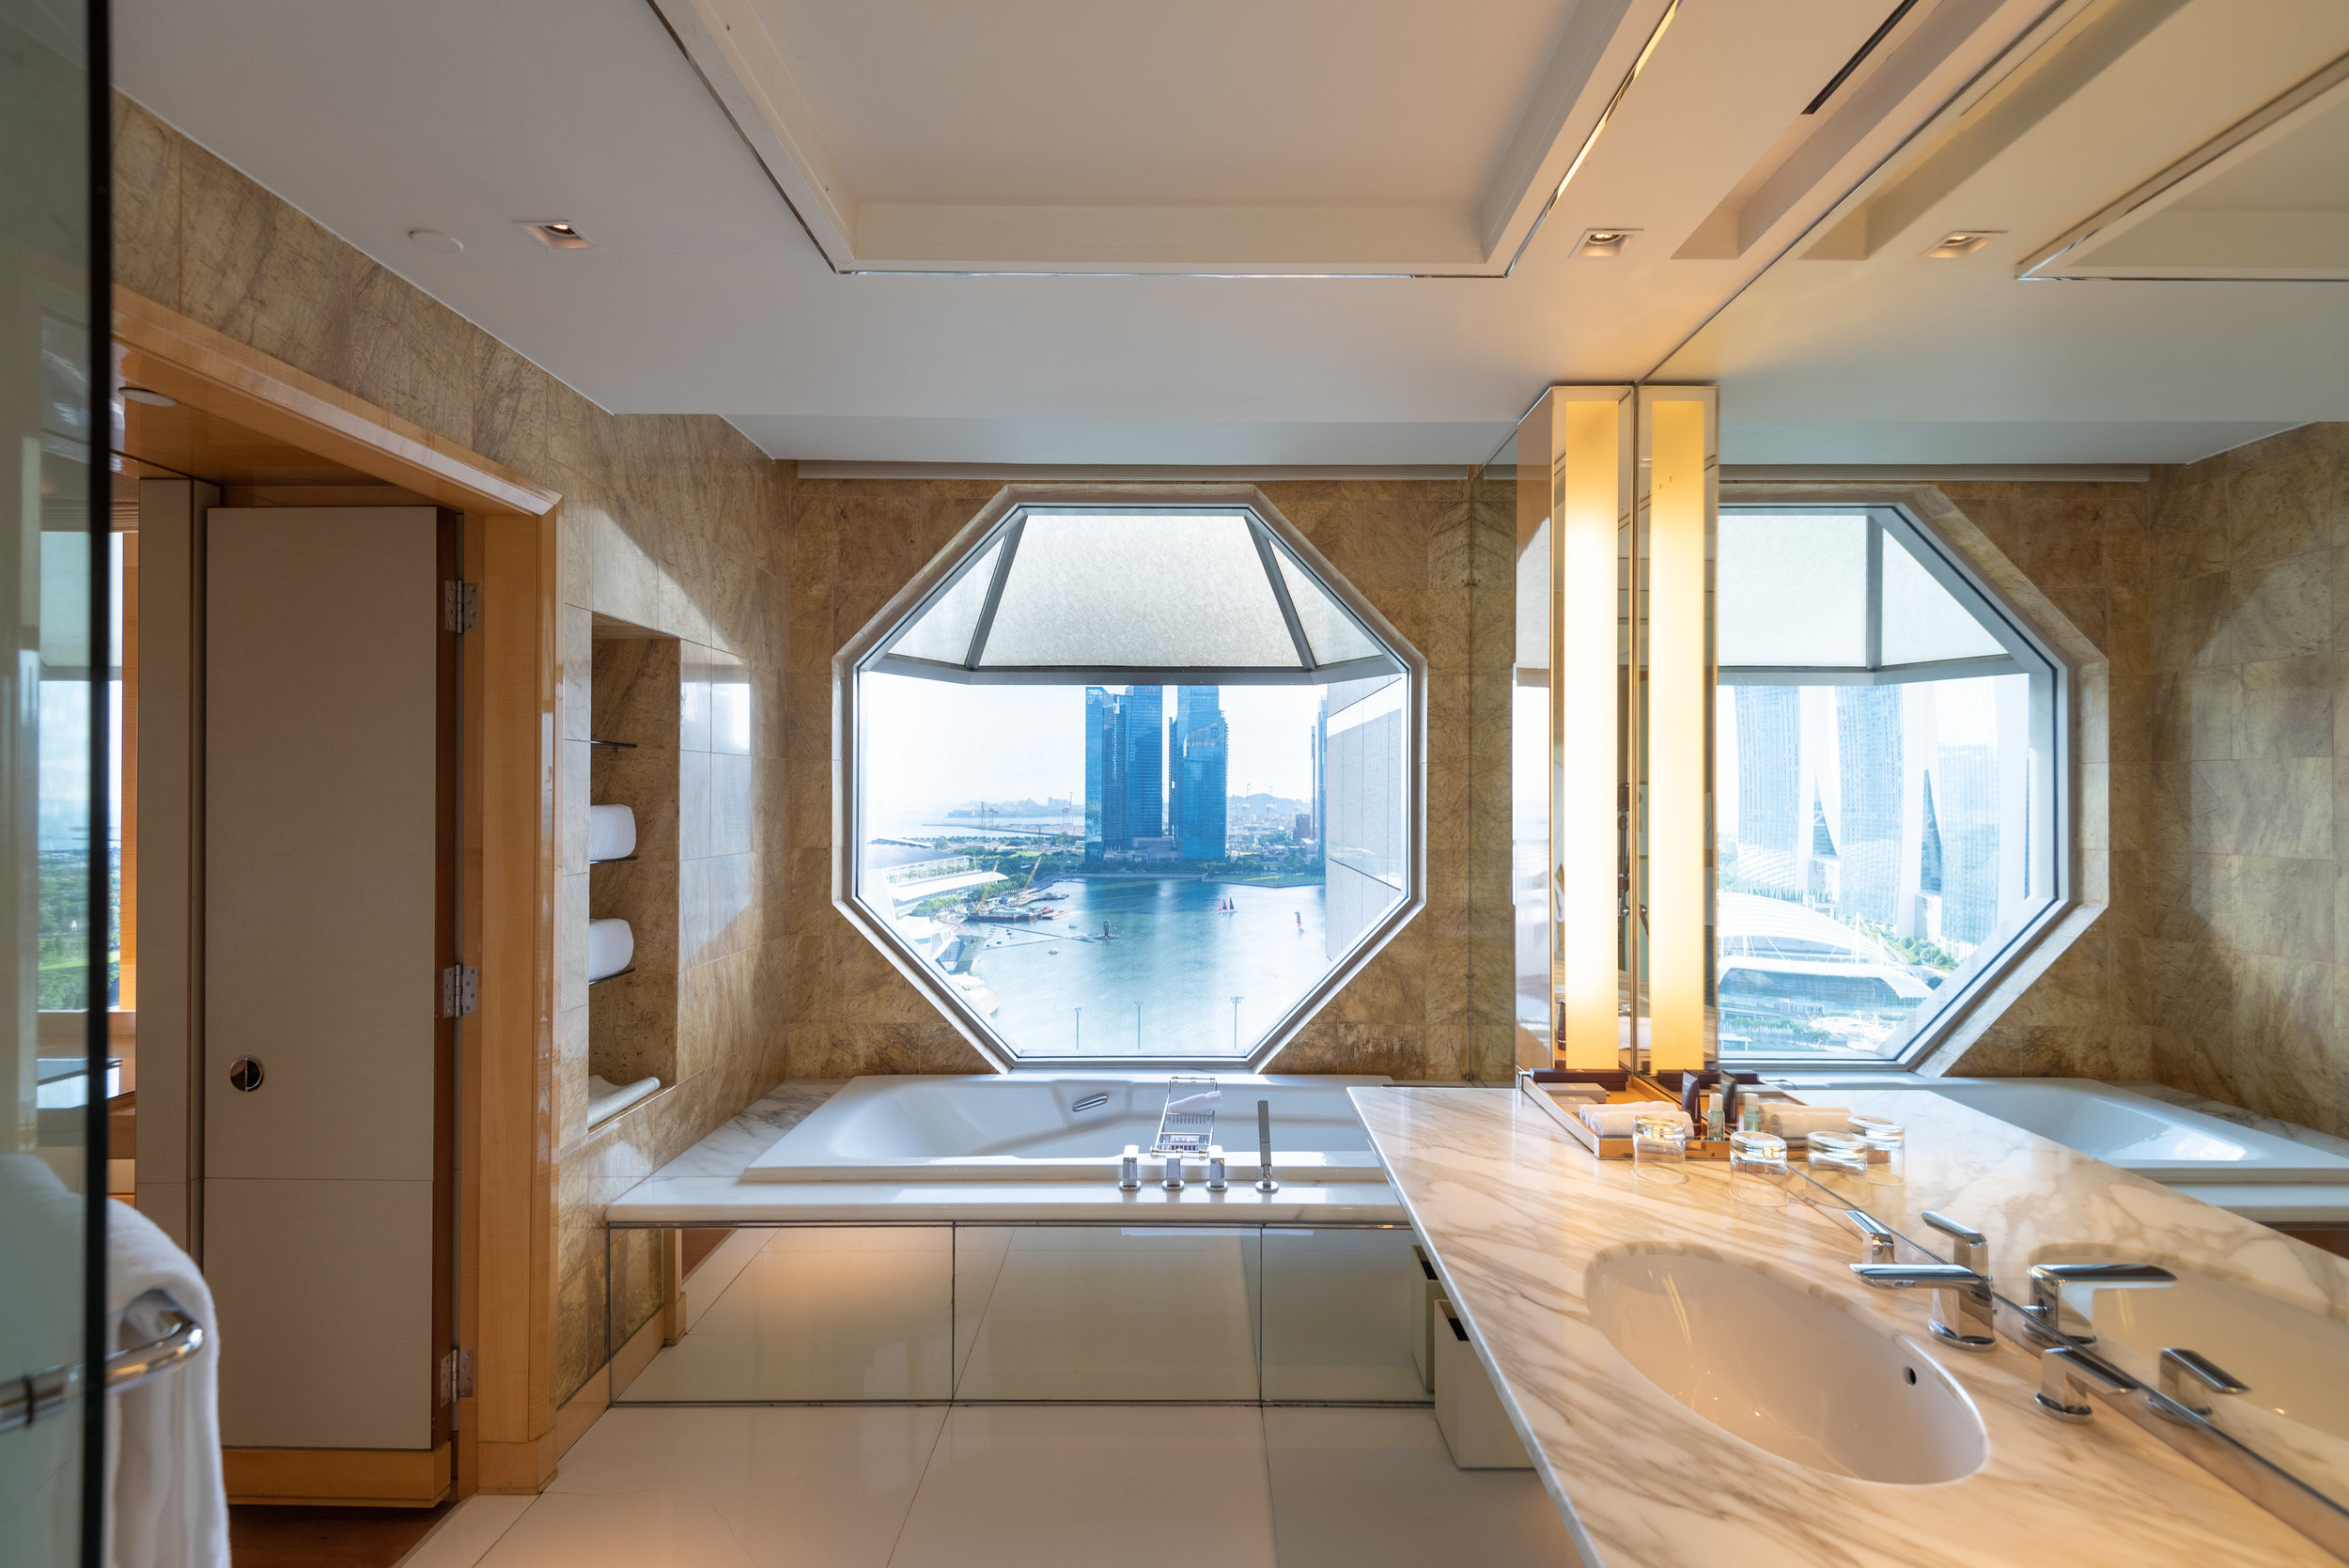 Iconic Bathroom Windows  Club Deluxe Marina Room - The Ritz-Carlton, Millenia Singapore